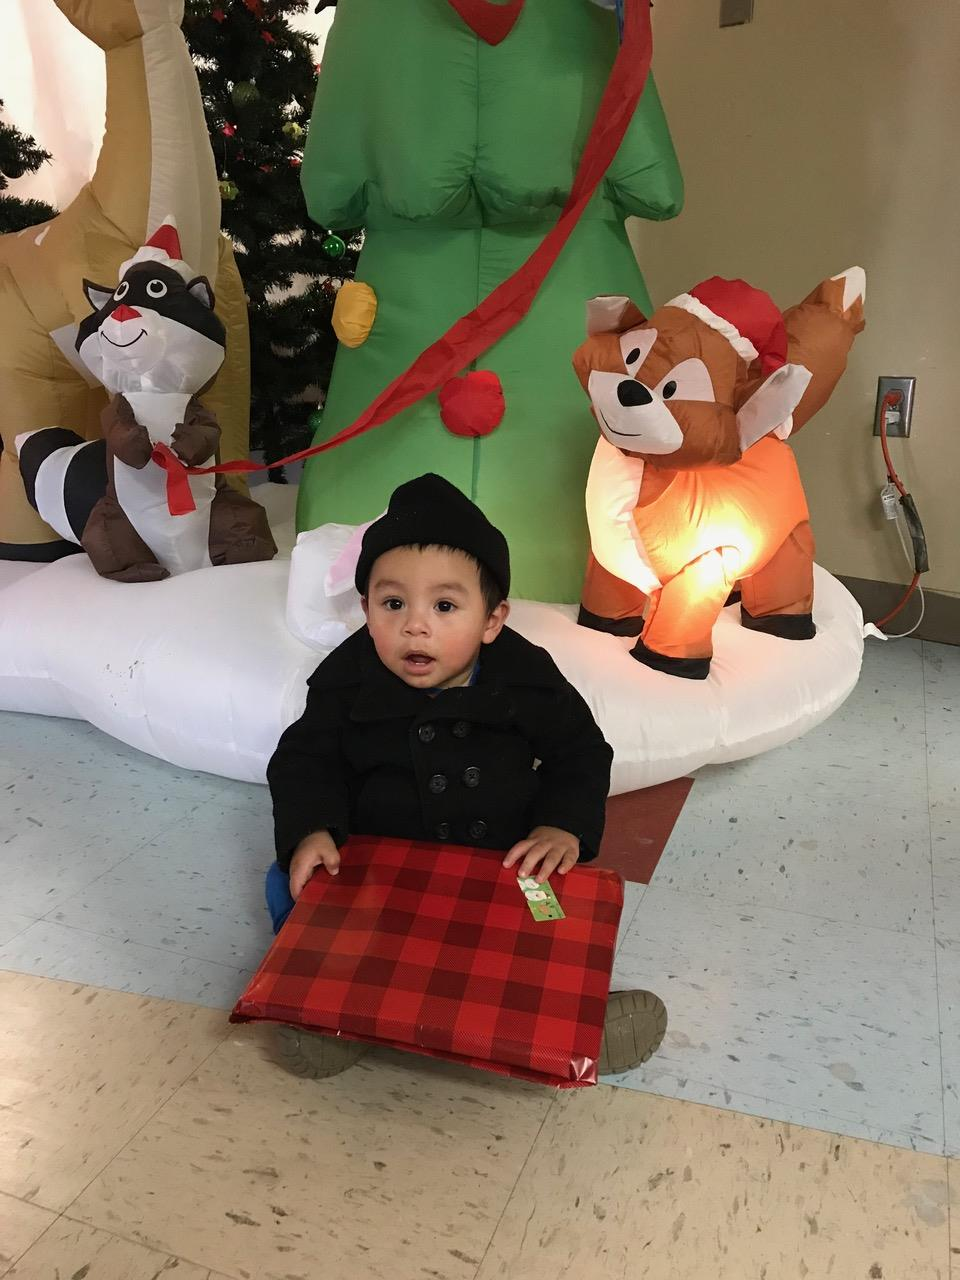 The Cheyenne River Youth Project Officially Launches the 2019 Wo Otúh'an Wi Toy Drive